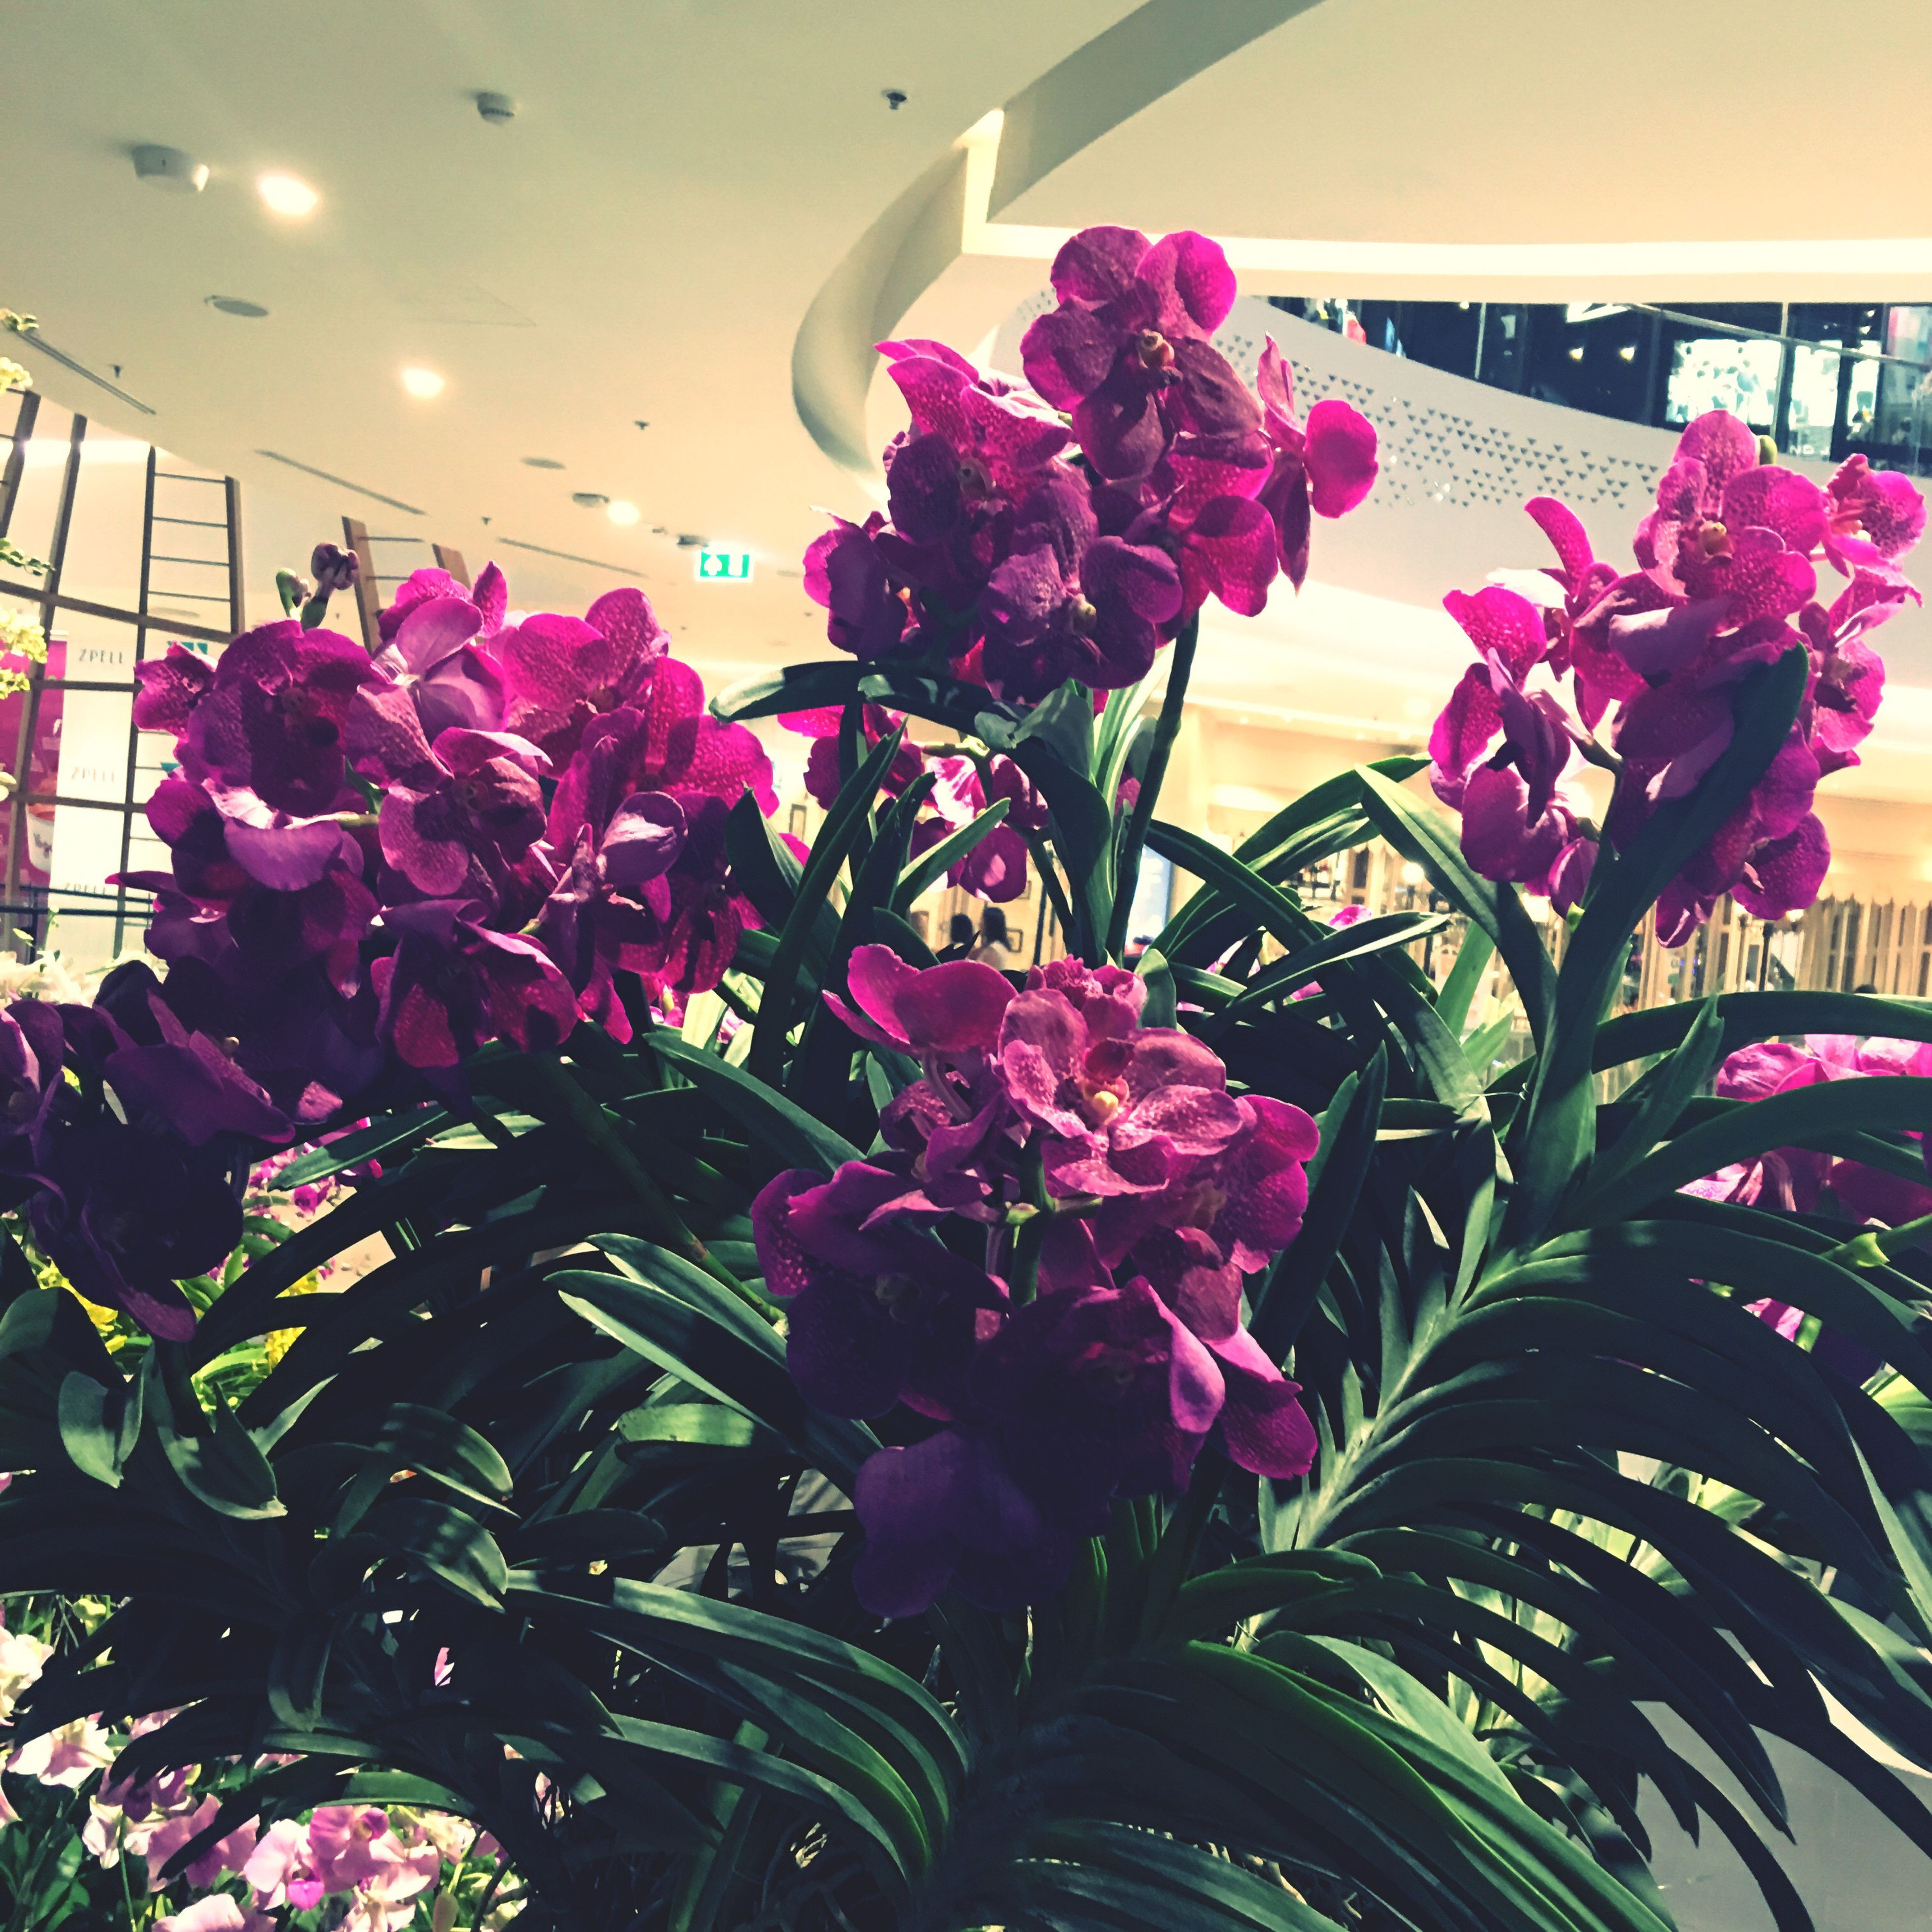 flower, freshness, growth, fragility, indoors, pink color, petal, beauty in nature, in bloom, plant, leaf, close-up, nature, springtime, flower head, purple, bunch of flowers, botany, green color, blooming, vibrant color, blossom, cultivated, growing